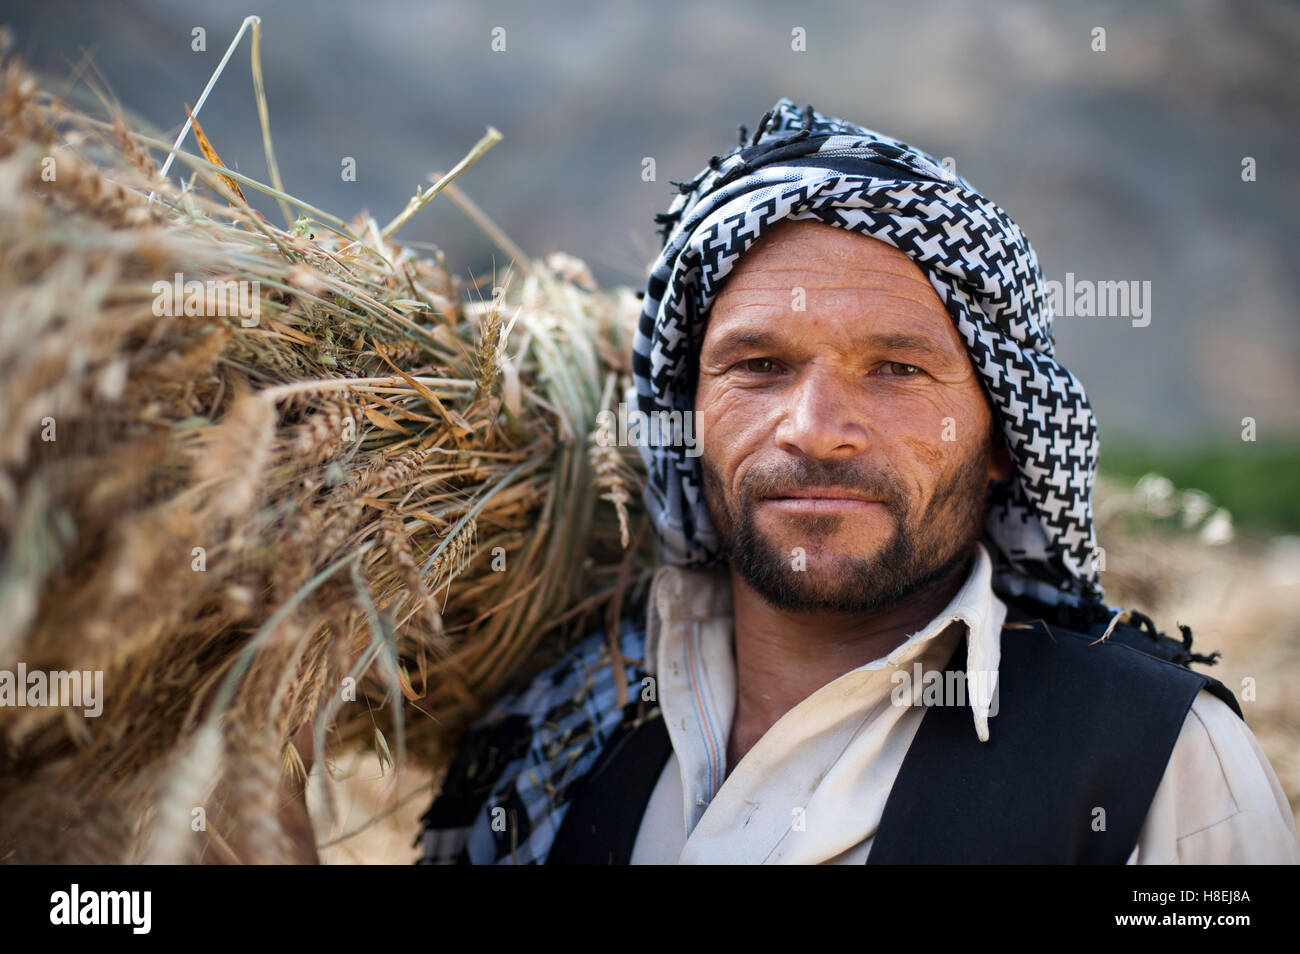 An Afghan man from the Panjshir Valley holds a freshly harvested